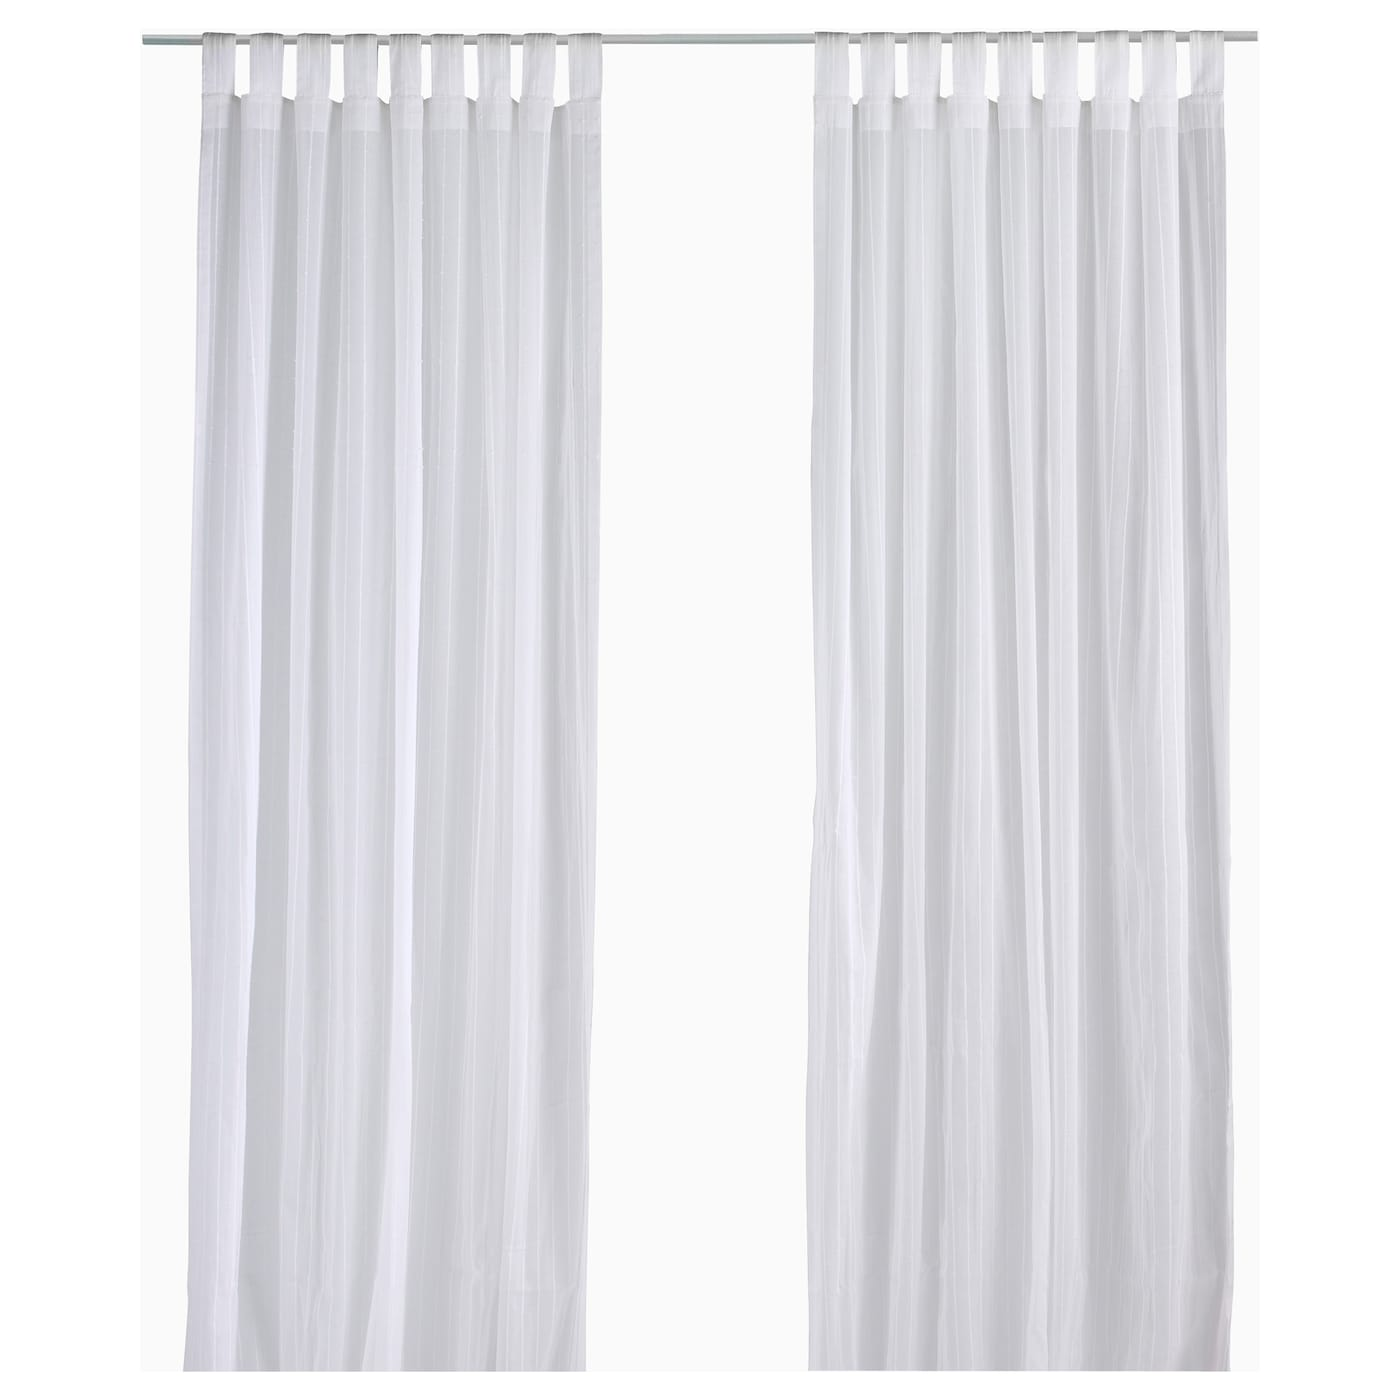 Matilda Sheer Curtains Pair White Cm Ikea